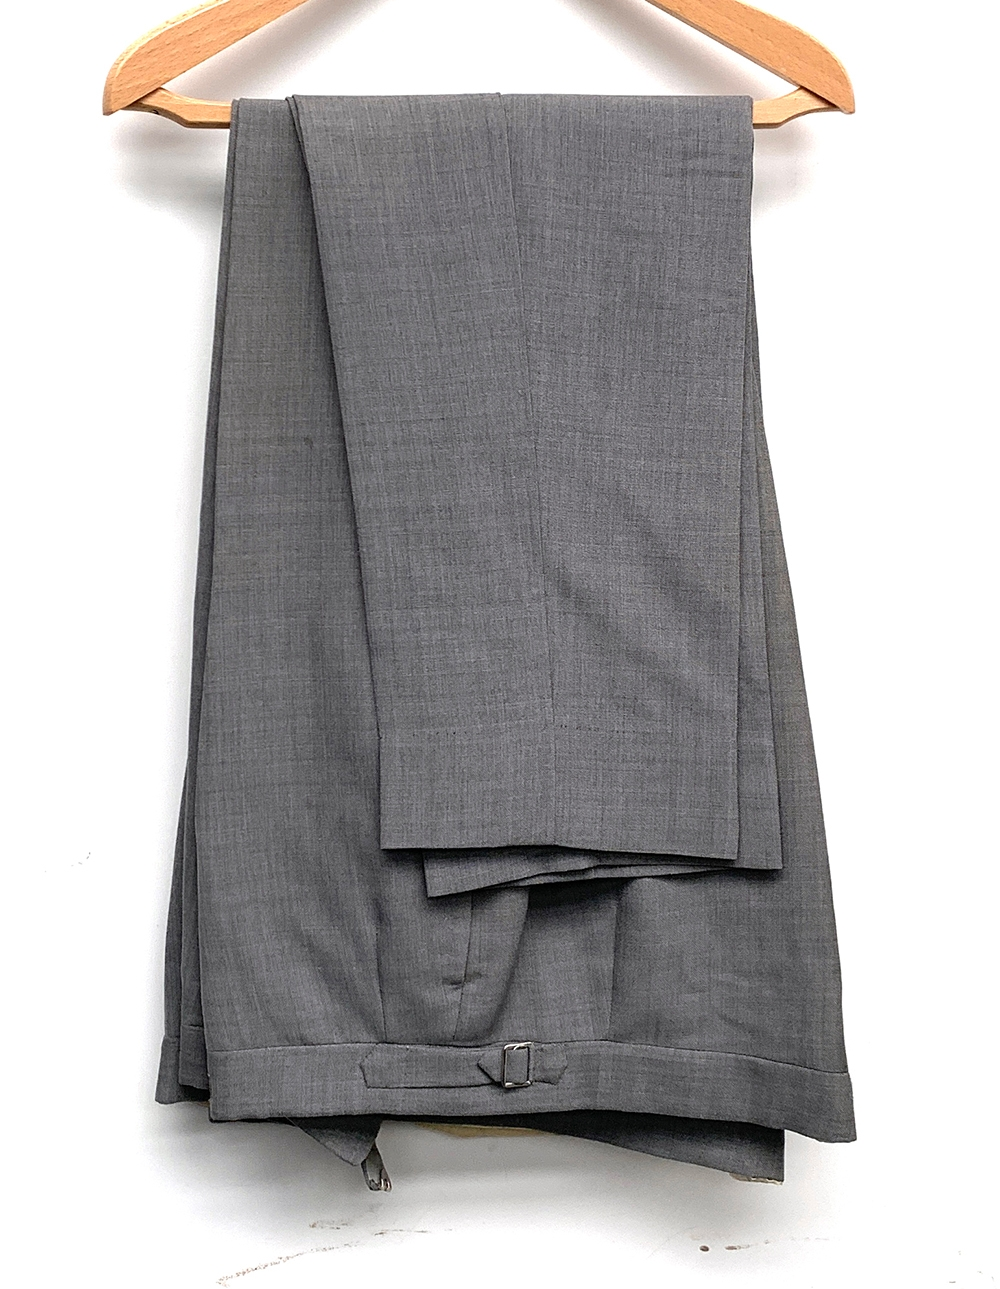 A gent's single breasted wool suit with two pairs of trousers, tailored by Sullivan, Woolley & - Image 2 of 3